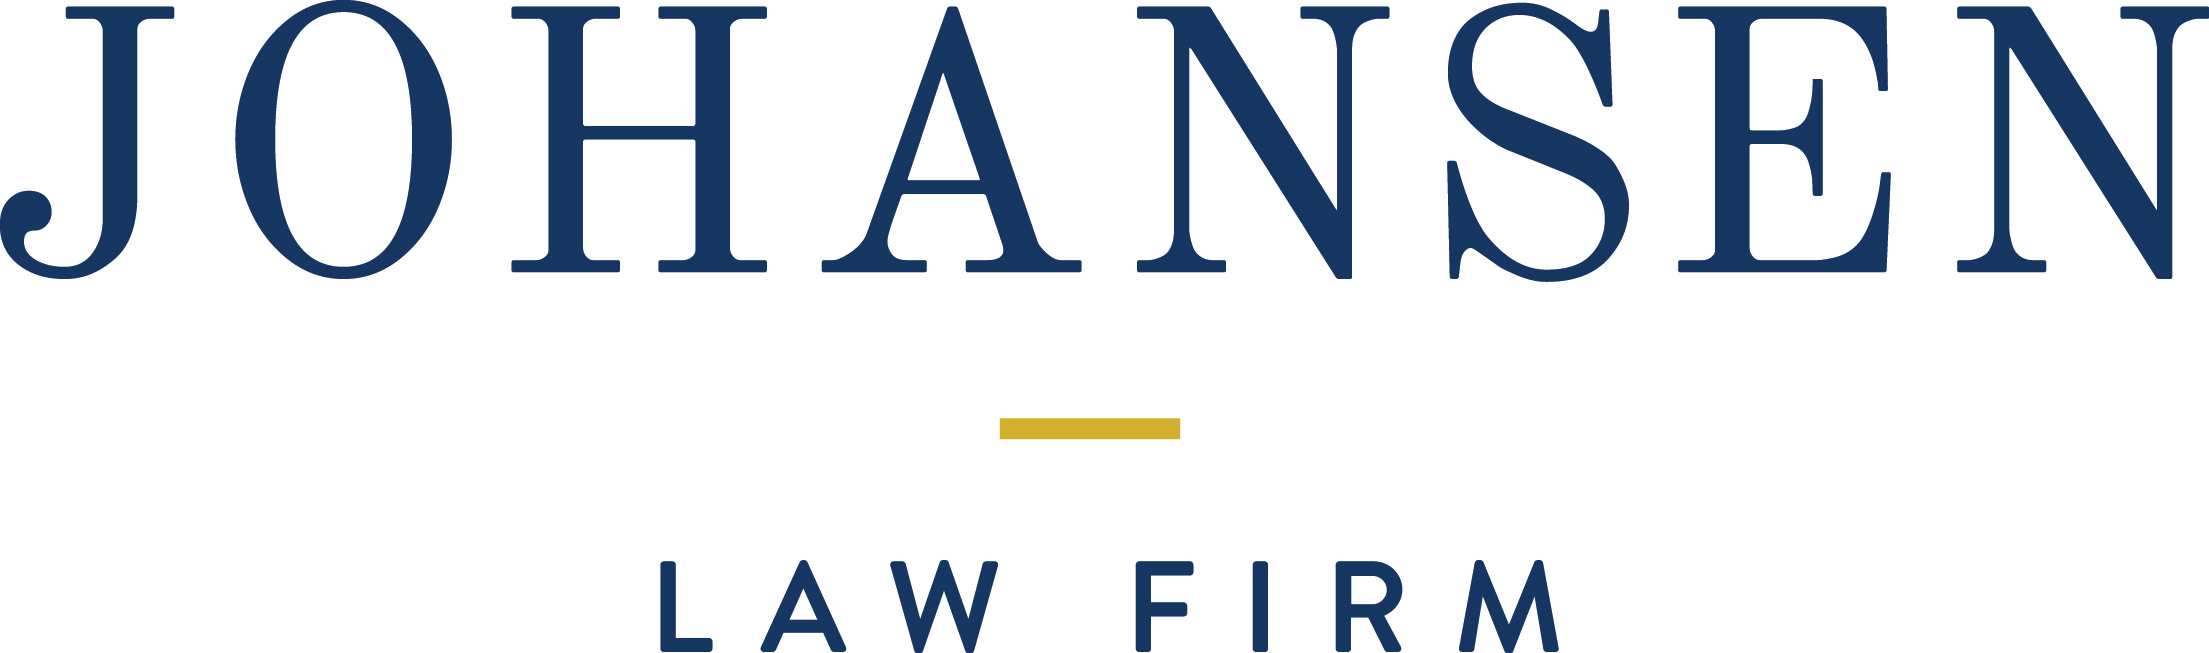 Johansen Law Firm